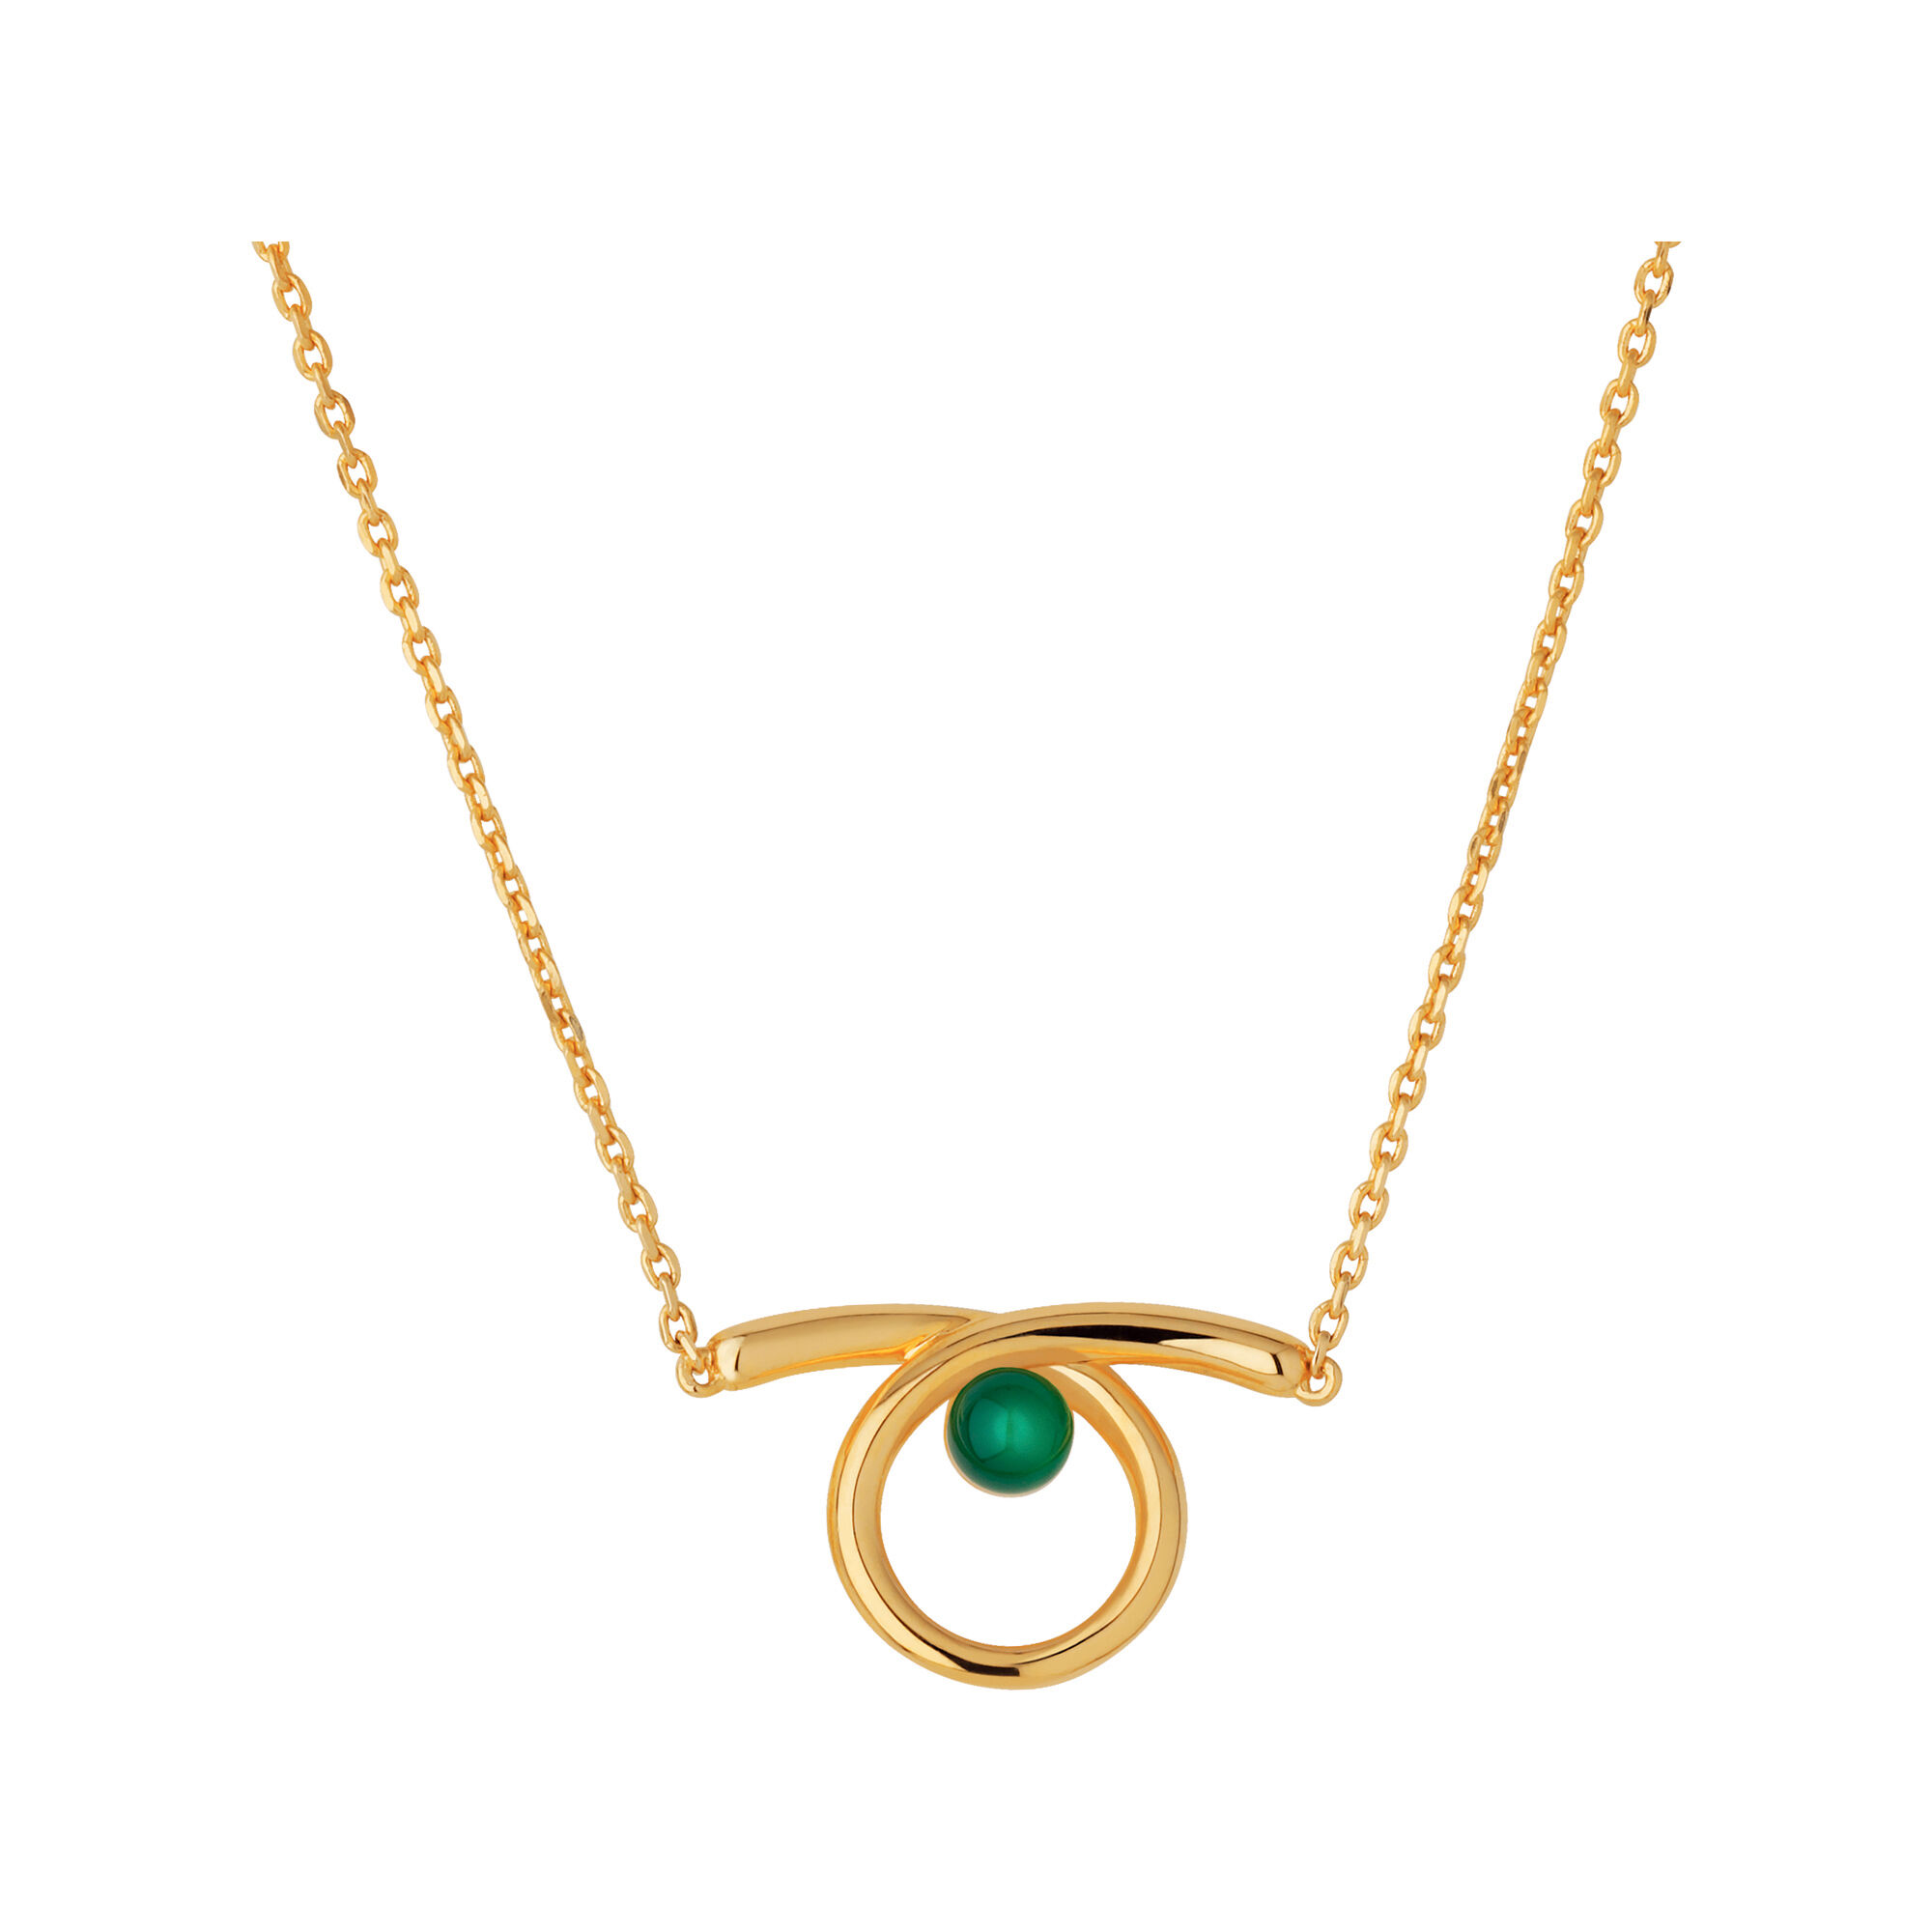 product necklace longnecklace green onyx mohina jewellery website online